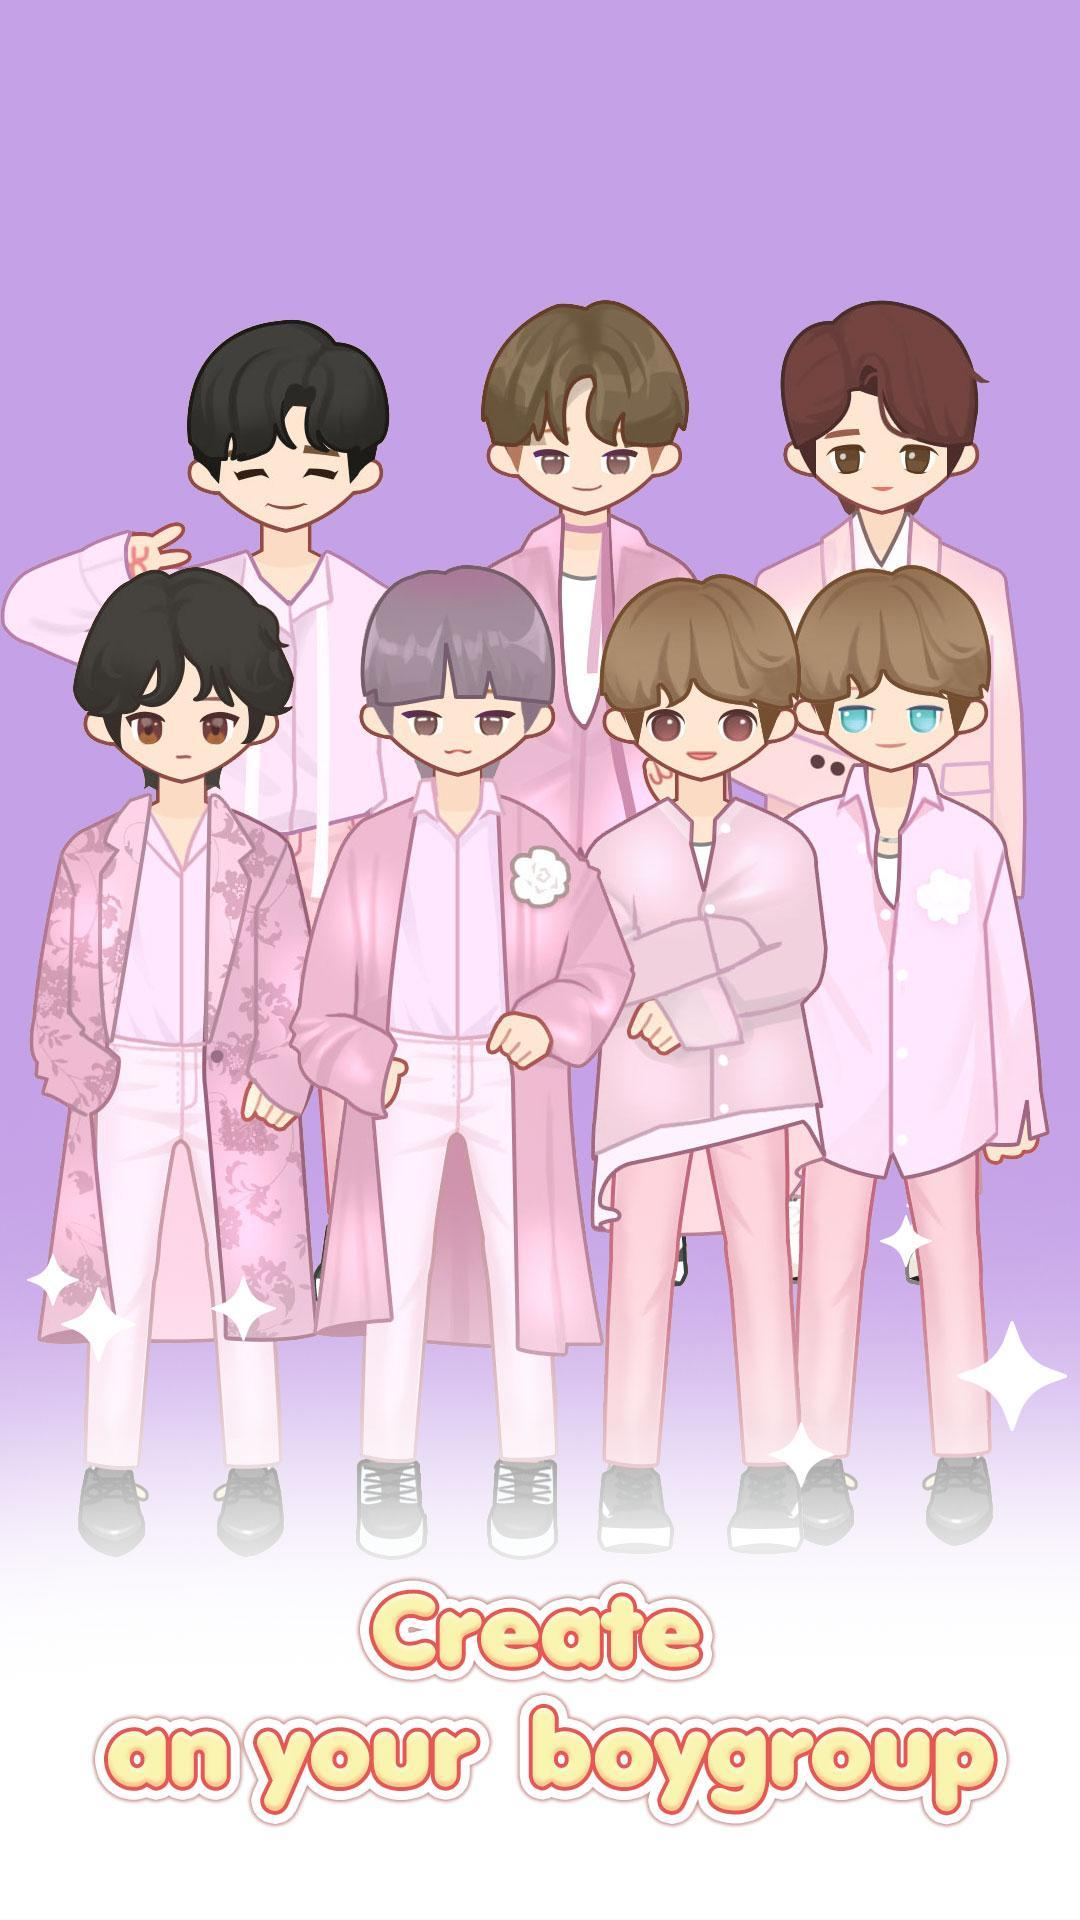 MYIDOL (#Dress up #BoyGroup #k-star #k-pop) 2.0.13 Screenshot 1